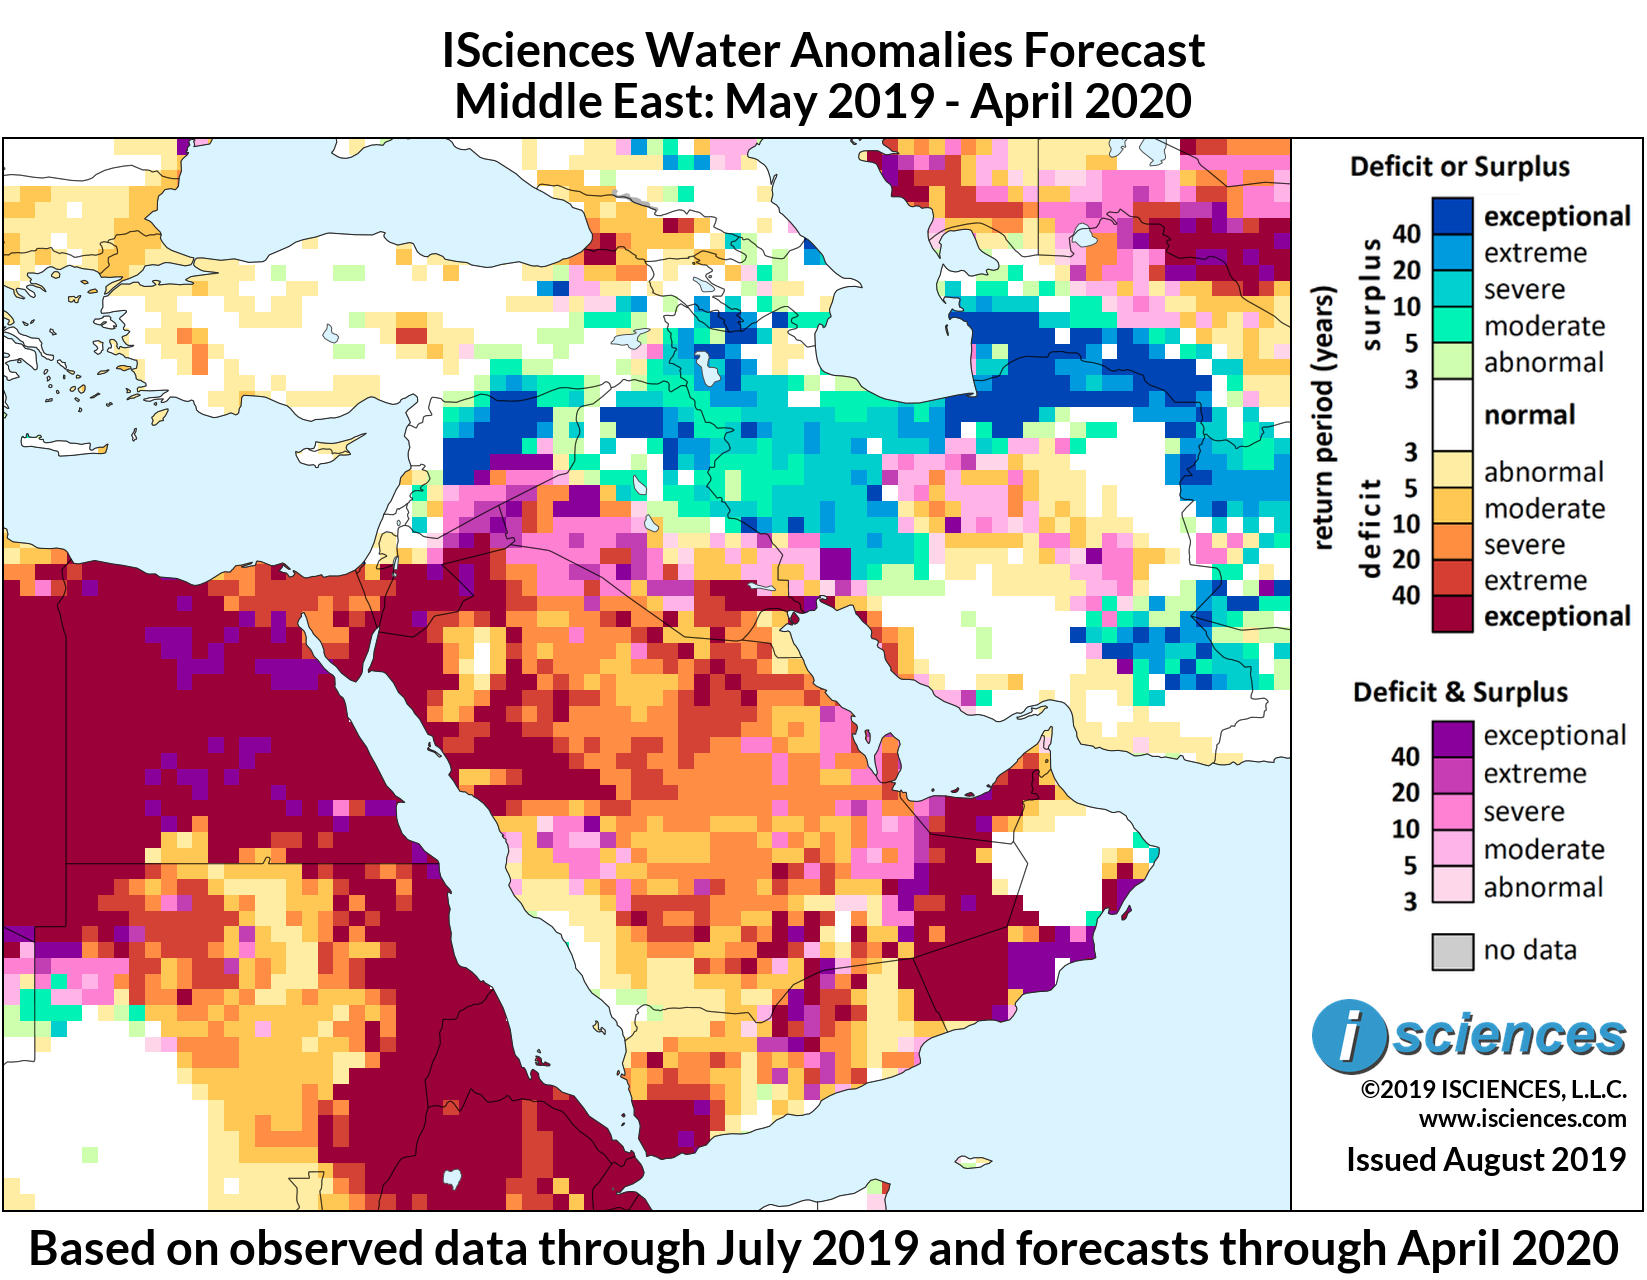 ISciences_Middle_East_Composite_Adjusted_201905-202004_12mo_panel.png